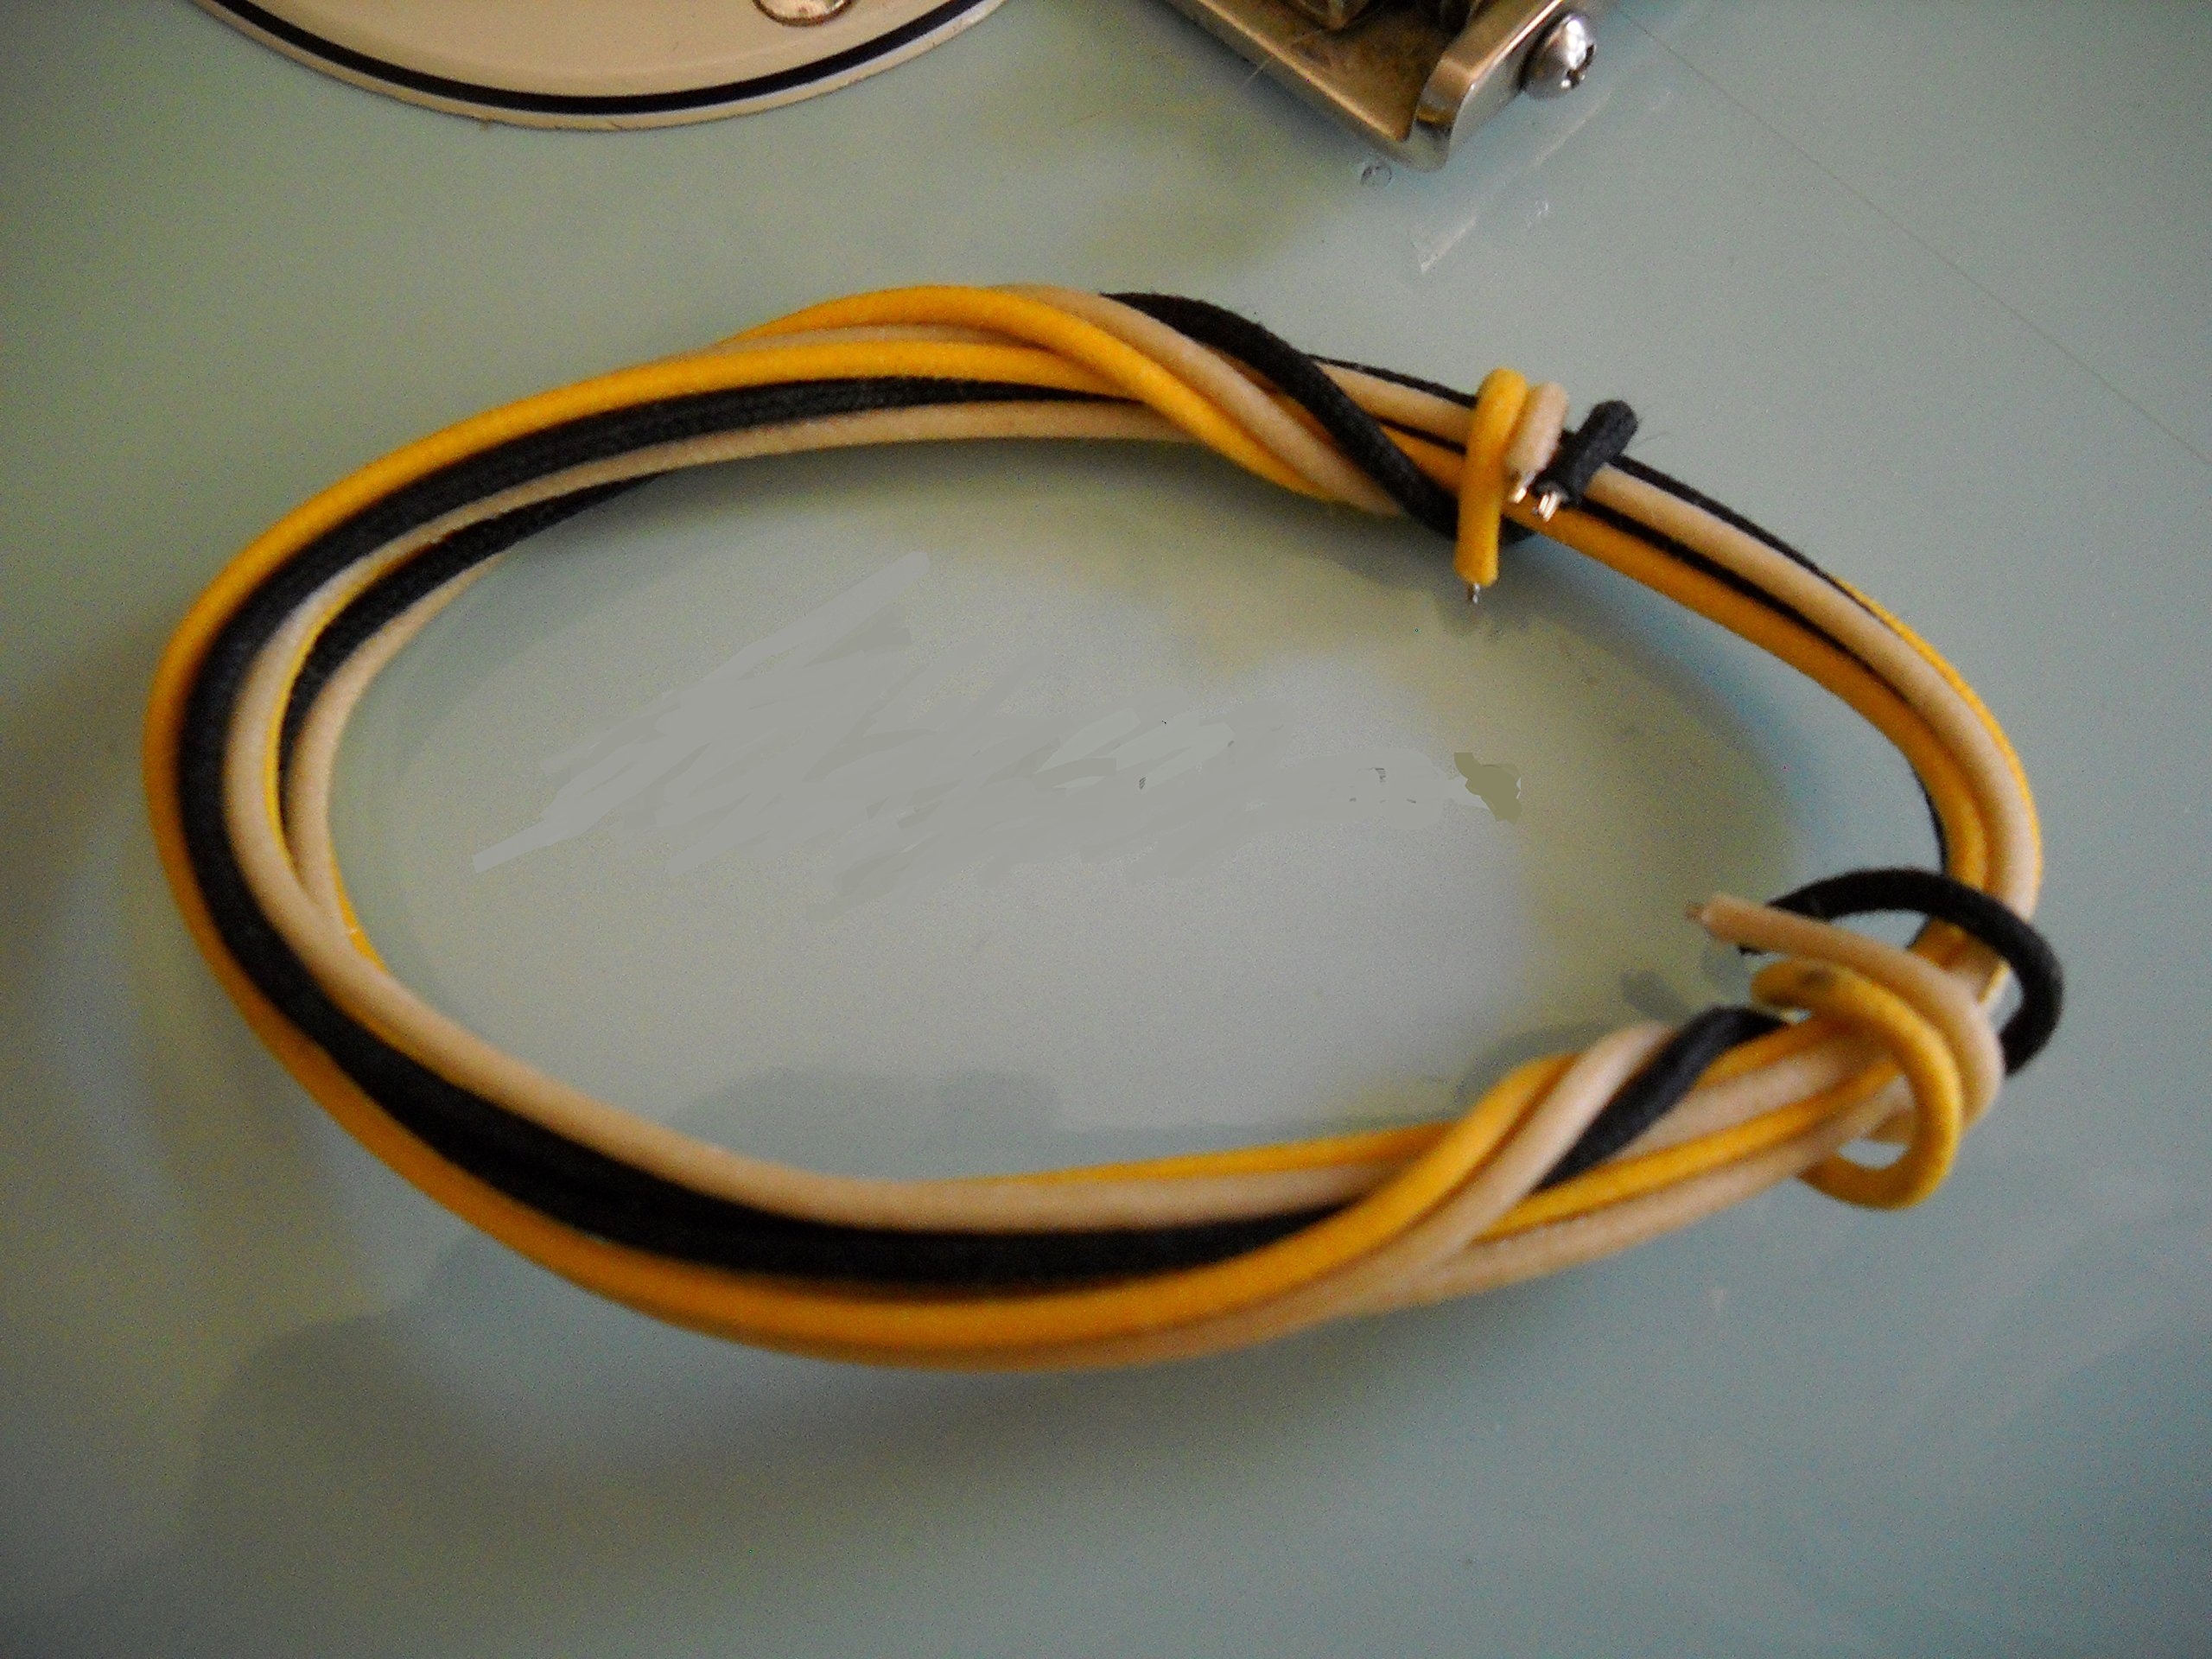 6 Feet (2-white/2-black/2-yellow) Gavitt Cloth-covered Pre-tinned 7-strand Pushback 22awg Vintage-style Guitar Wire